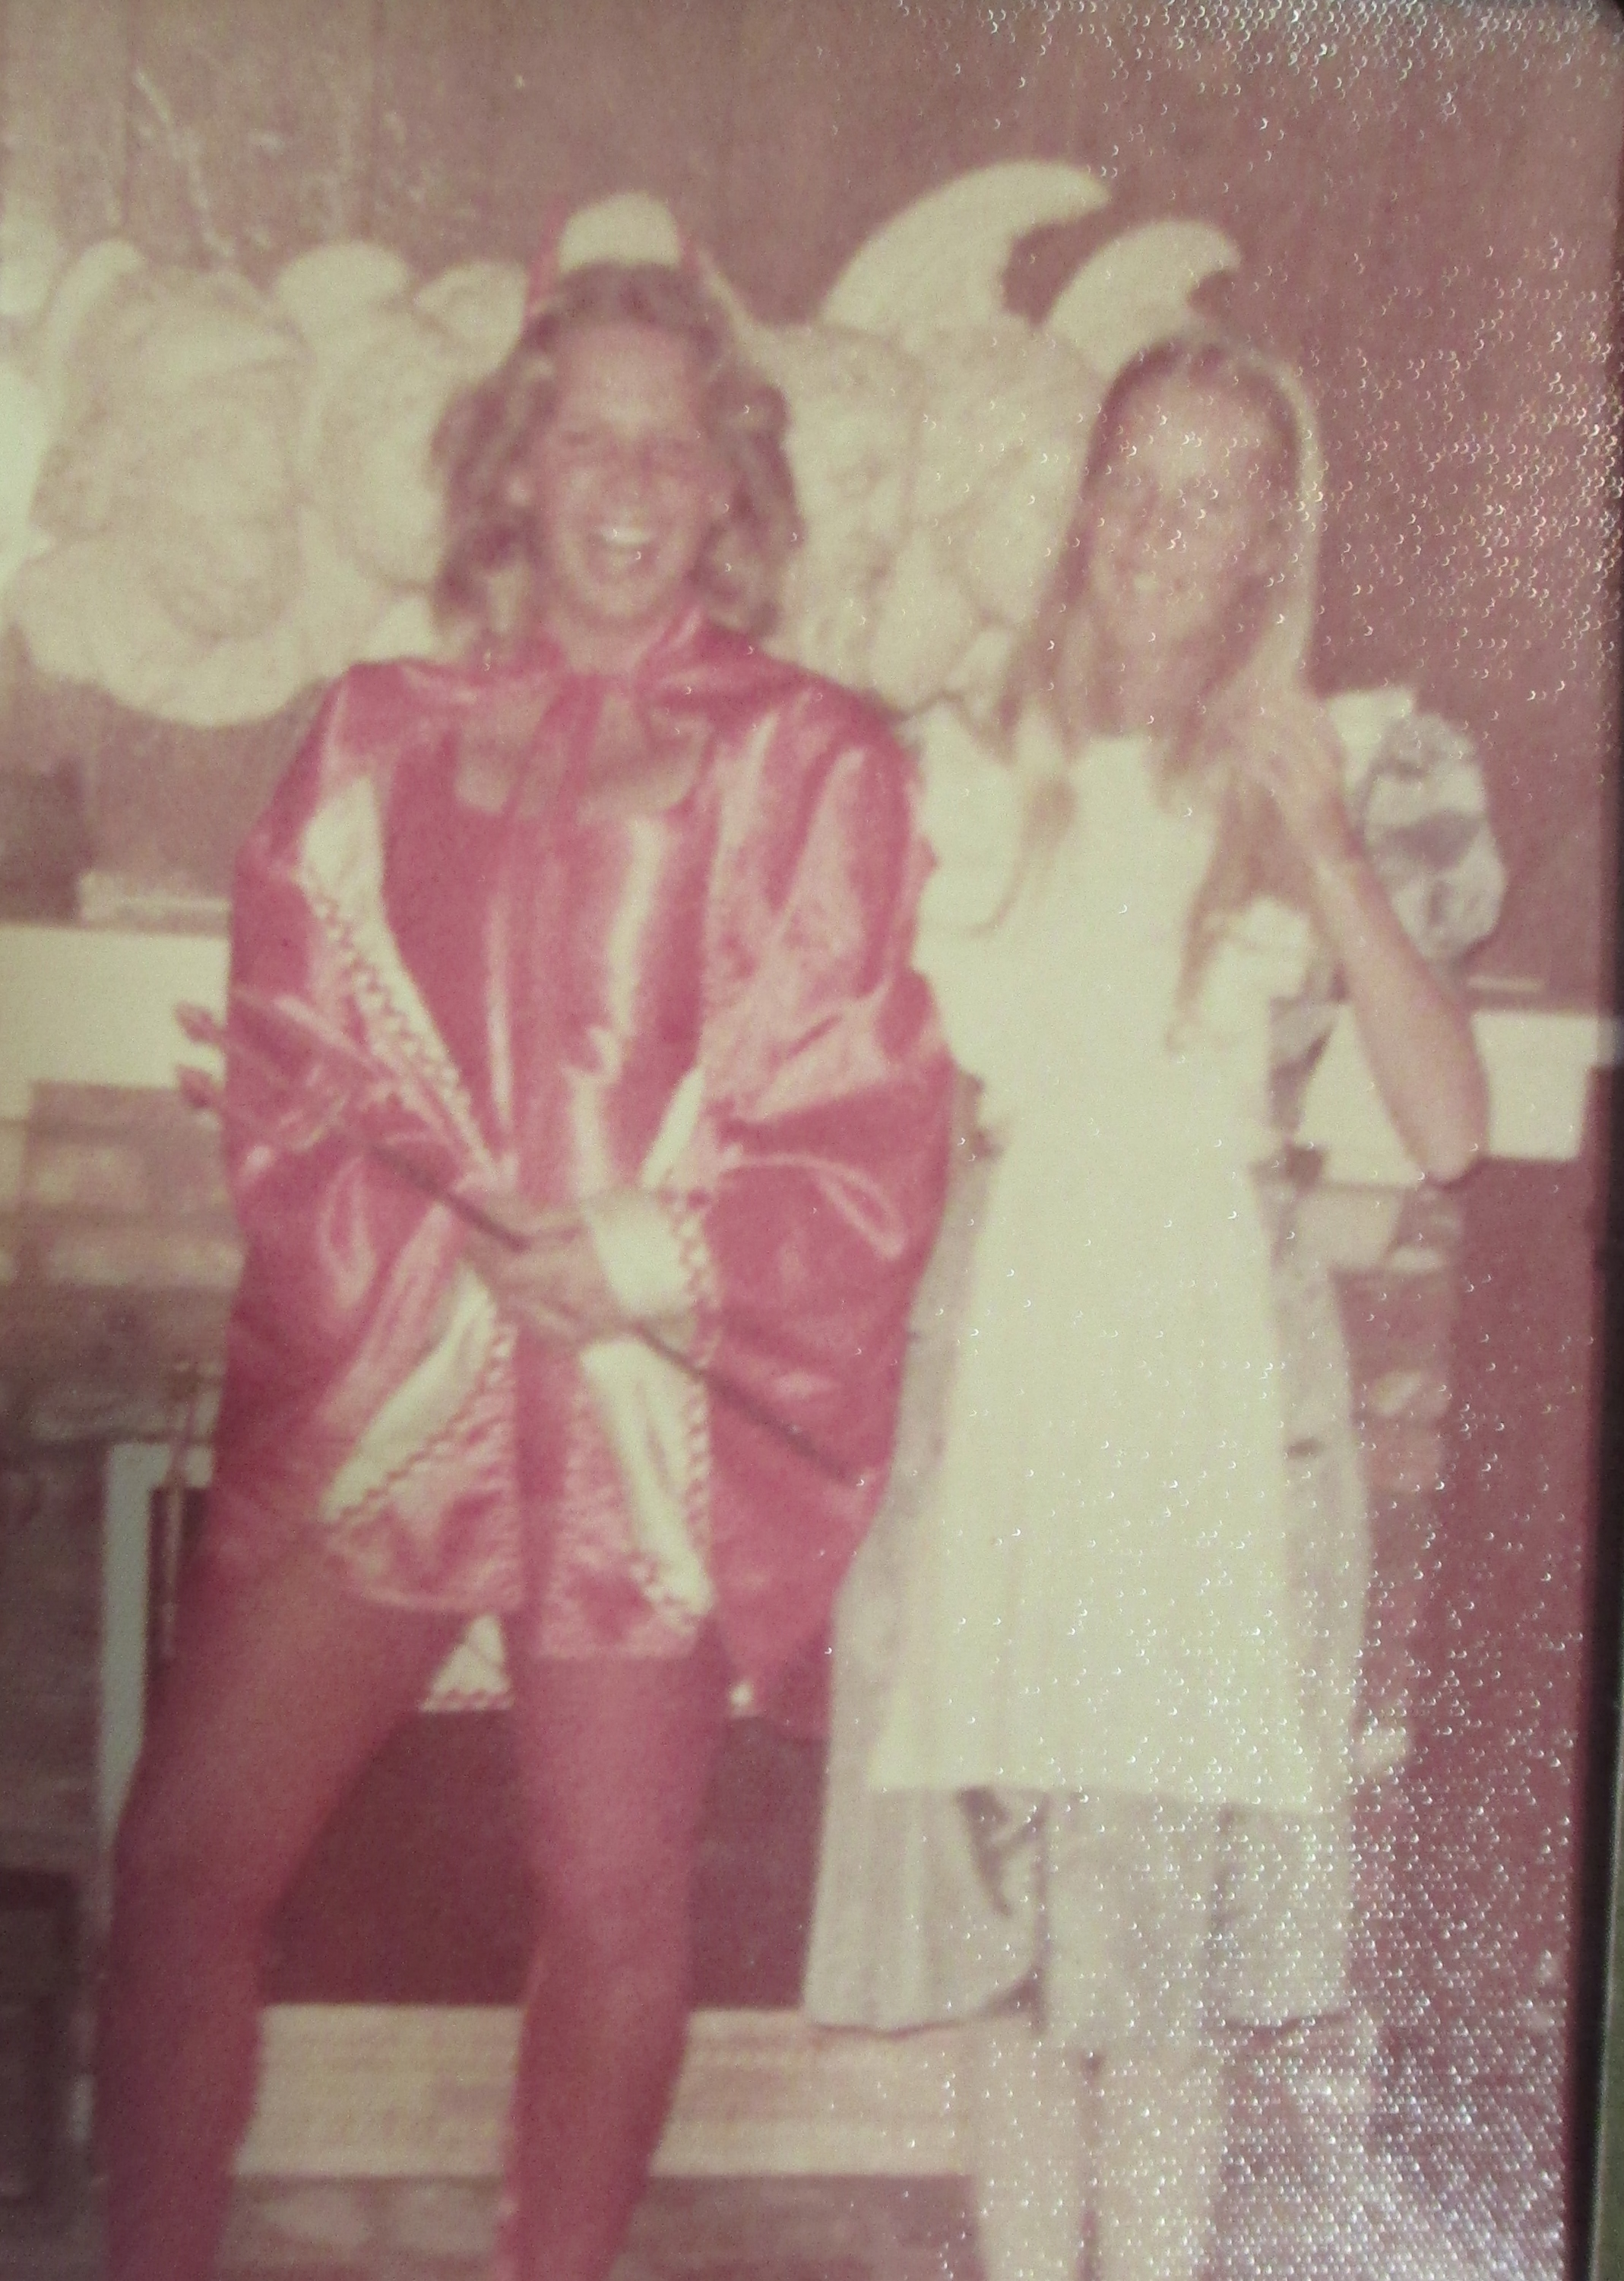 My BFF Valerie and I in High School. Thinking back, our costumes reflect our personalities, even back then. Valerie always was the nice one . . .